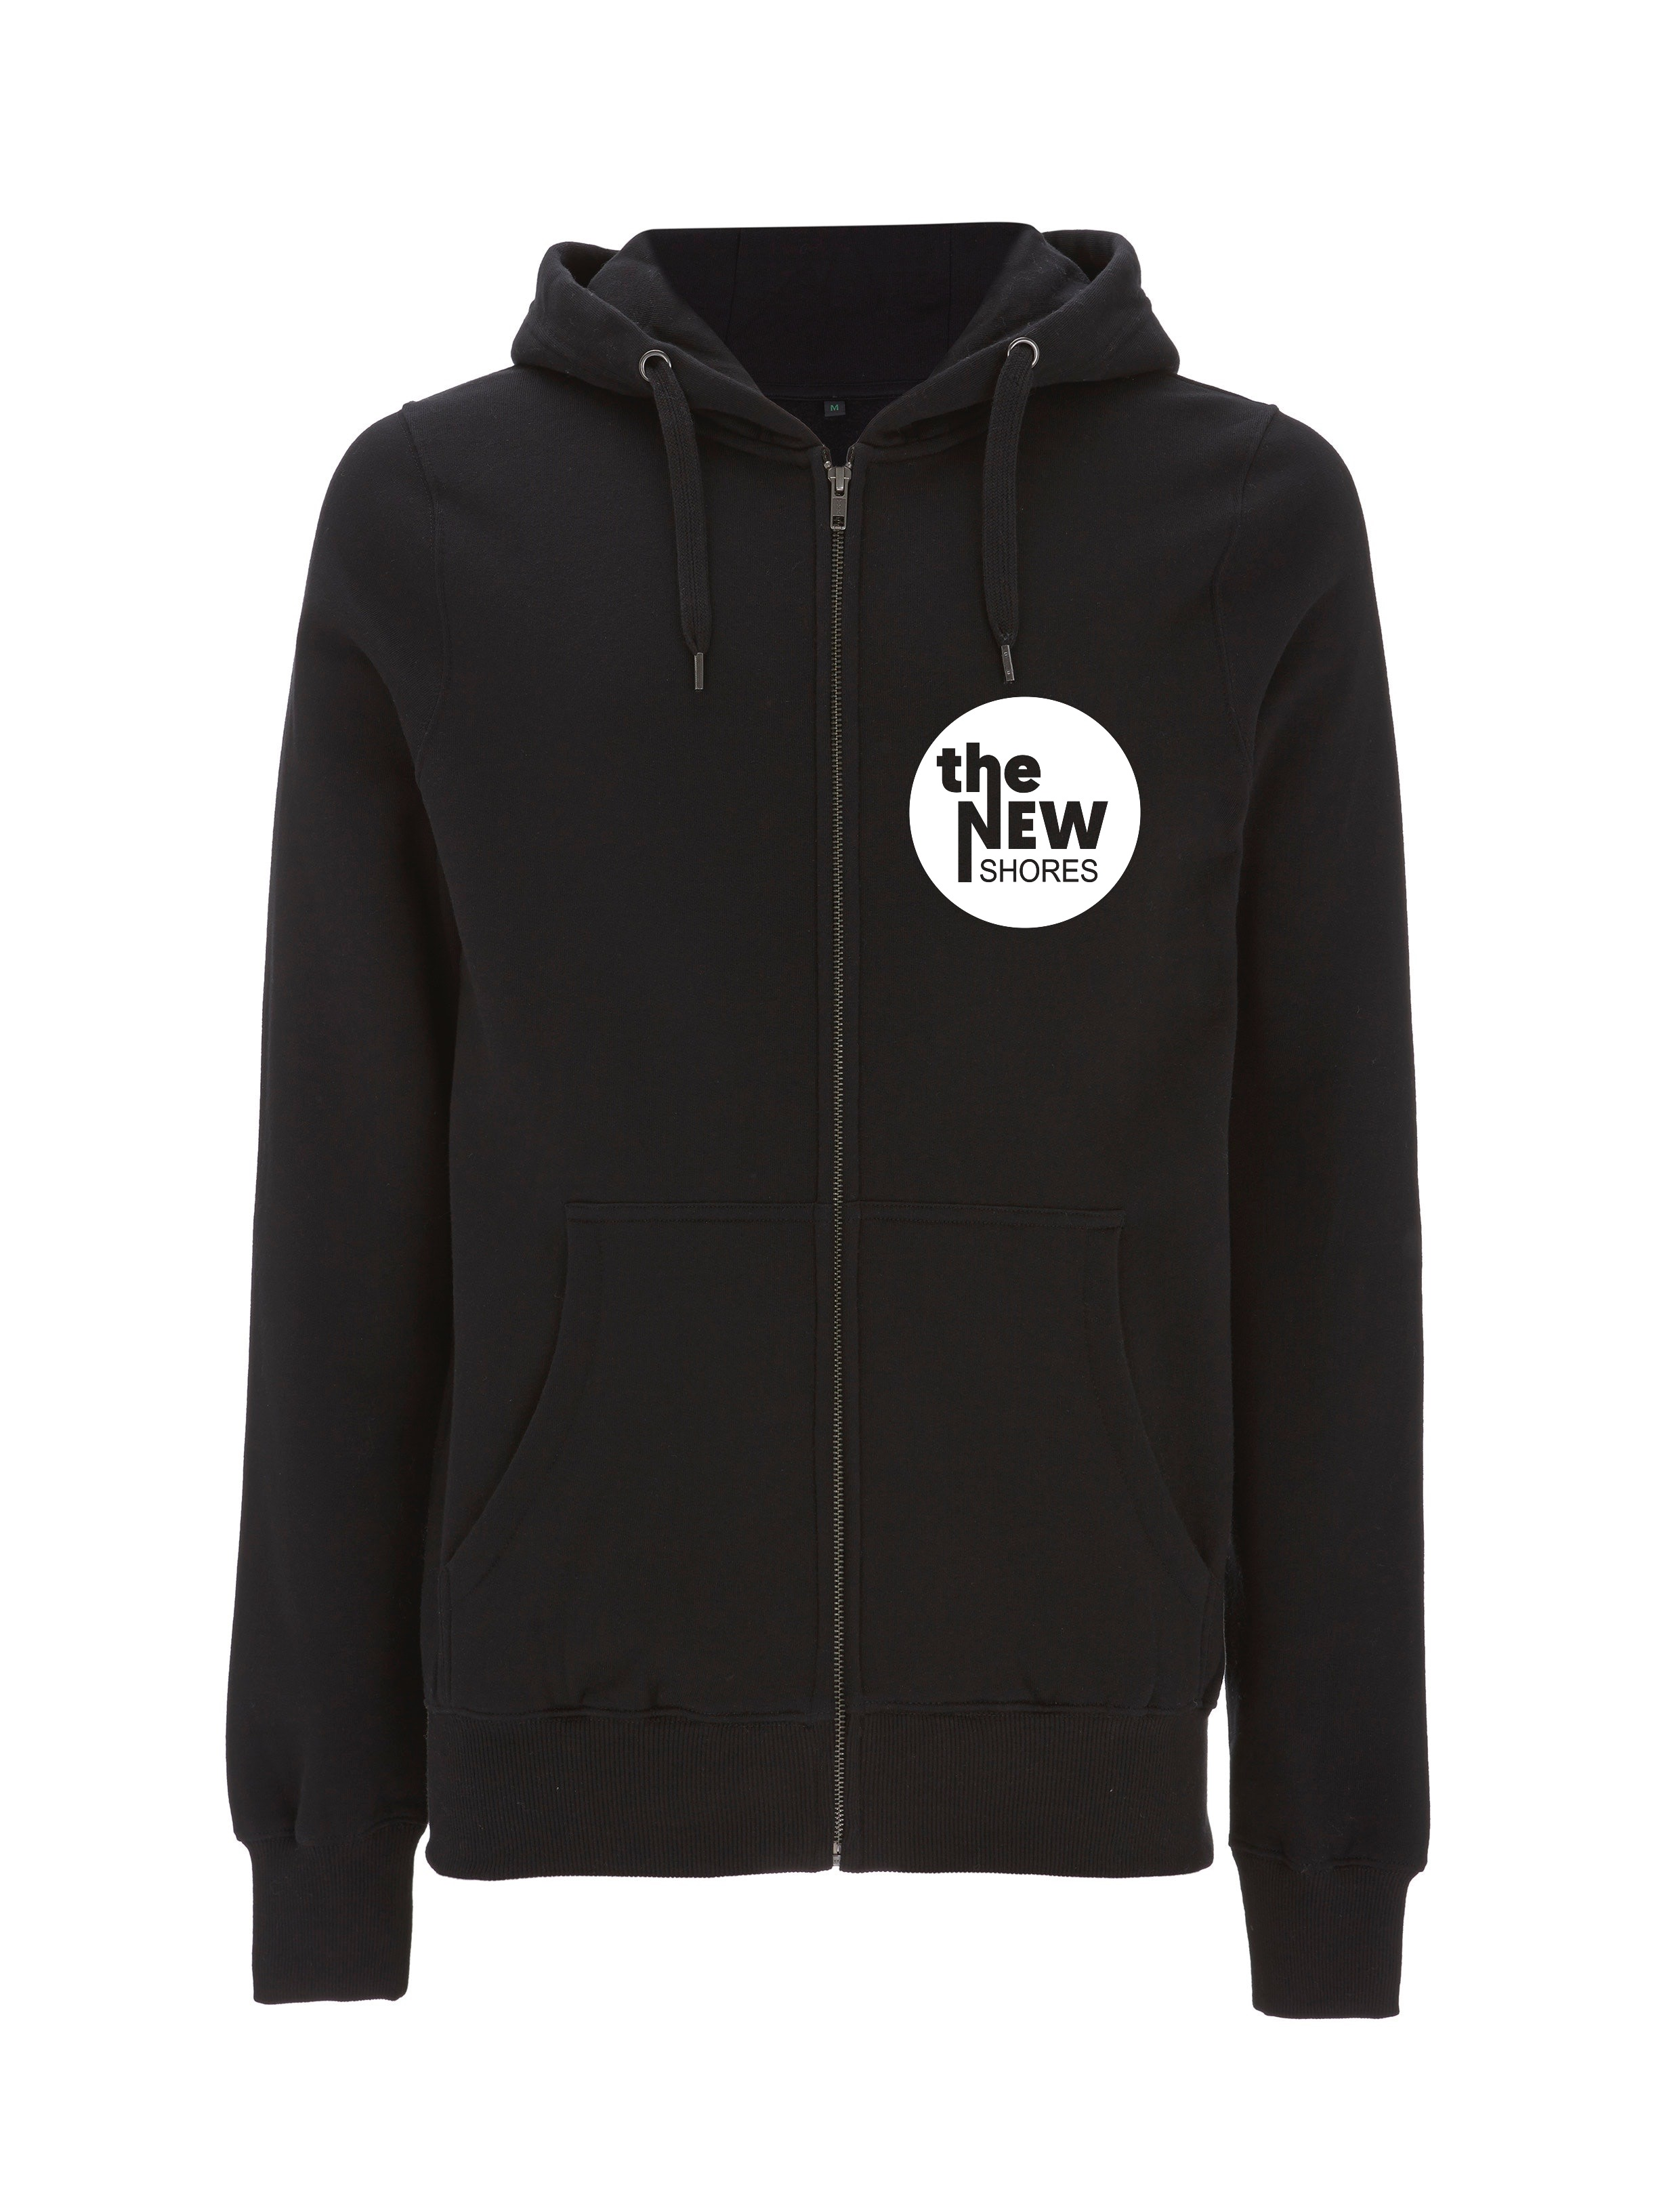 The New Shores – TNS Logo – Zip-Jacke (schwarz)